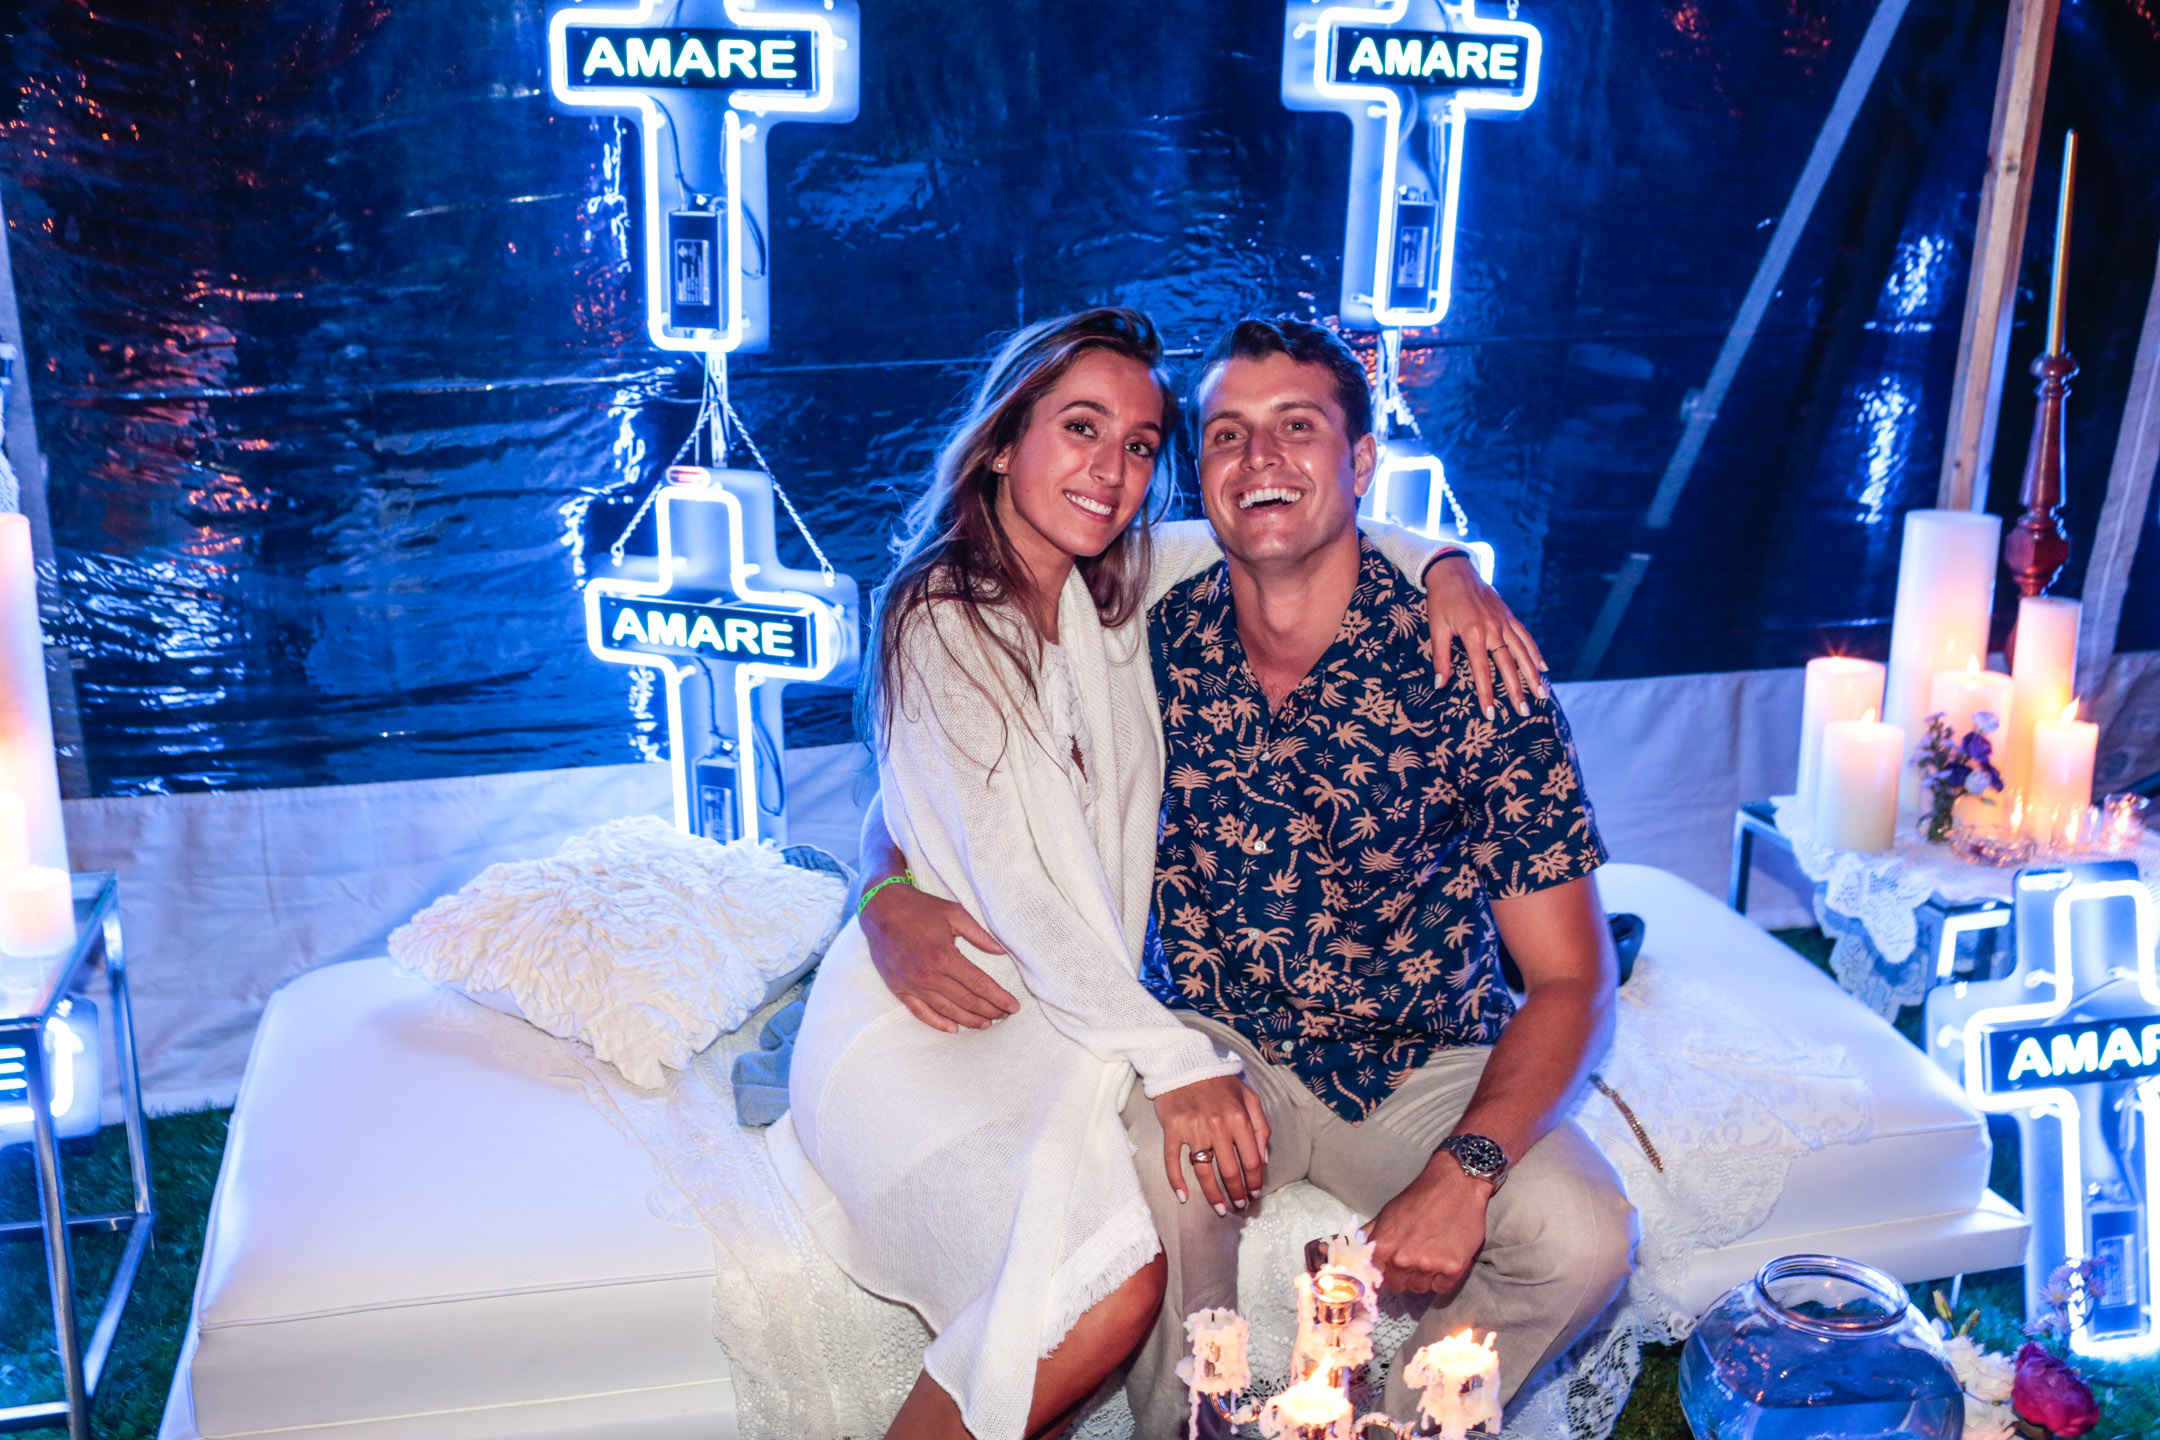 2eric_striffler_photography_event_party-22.jpg